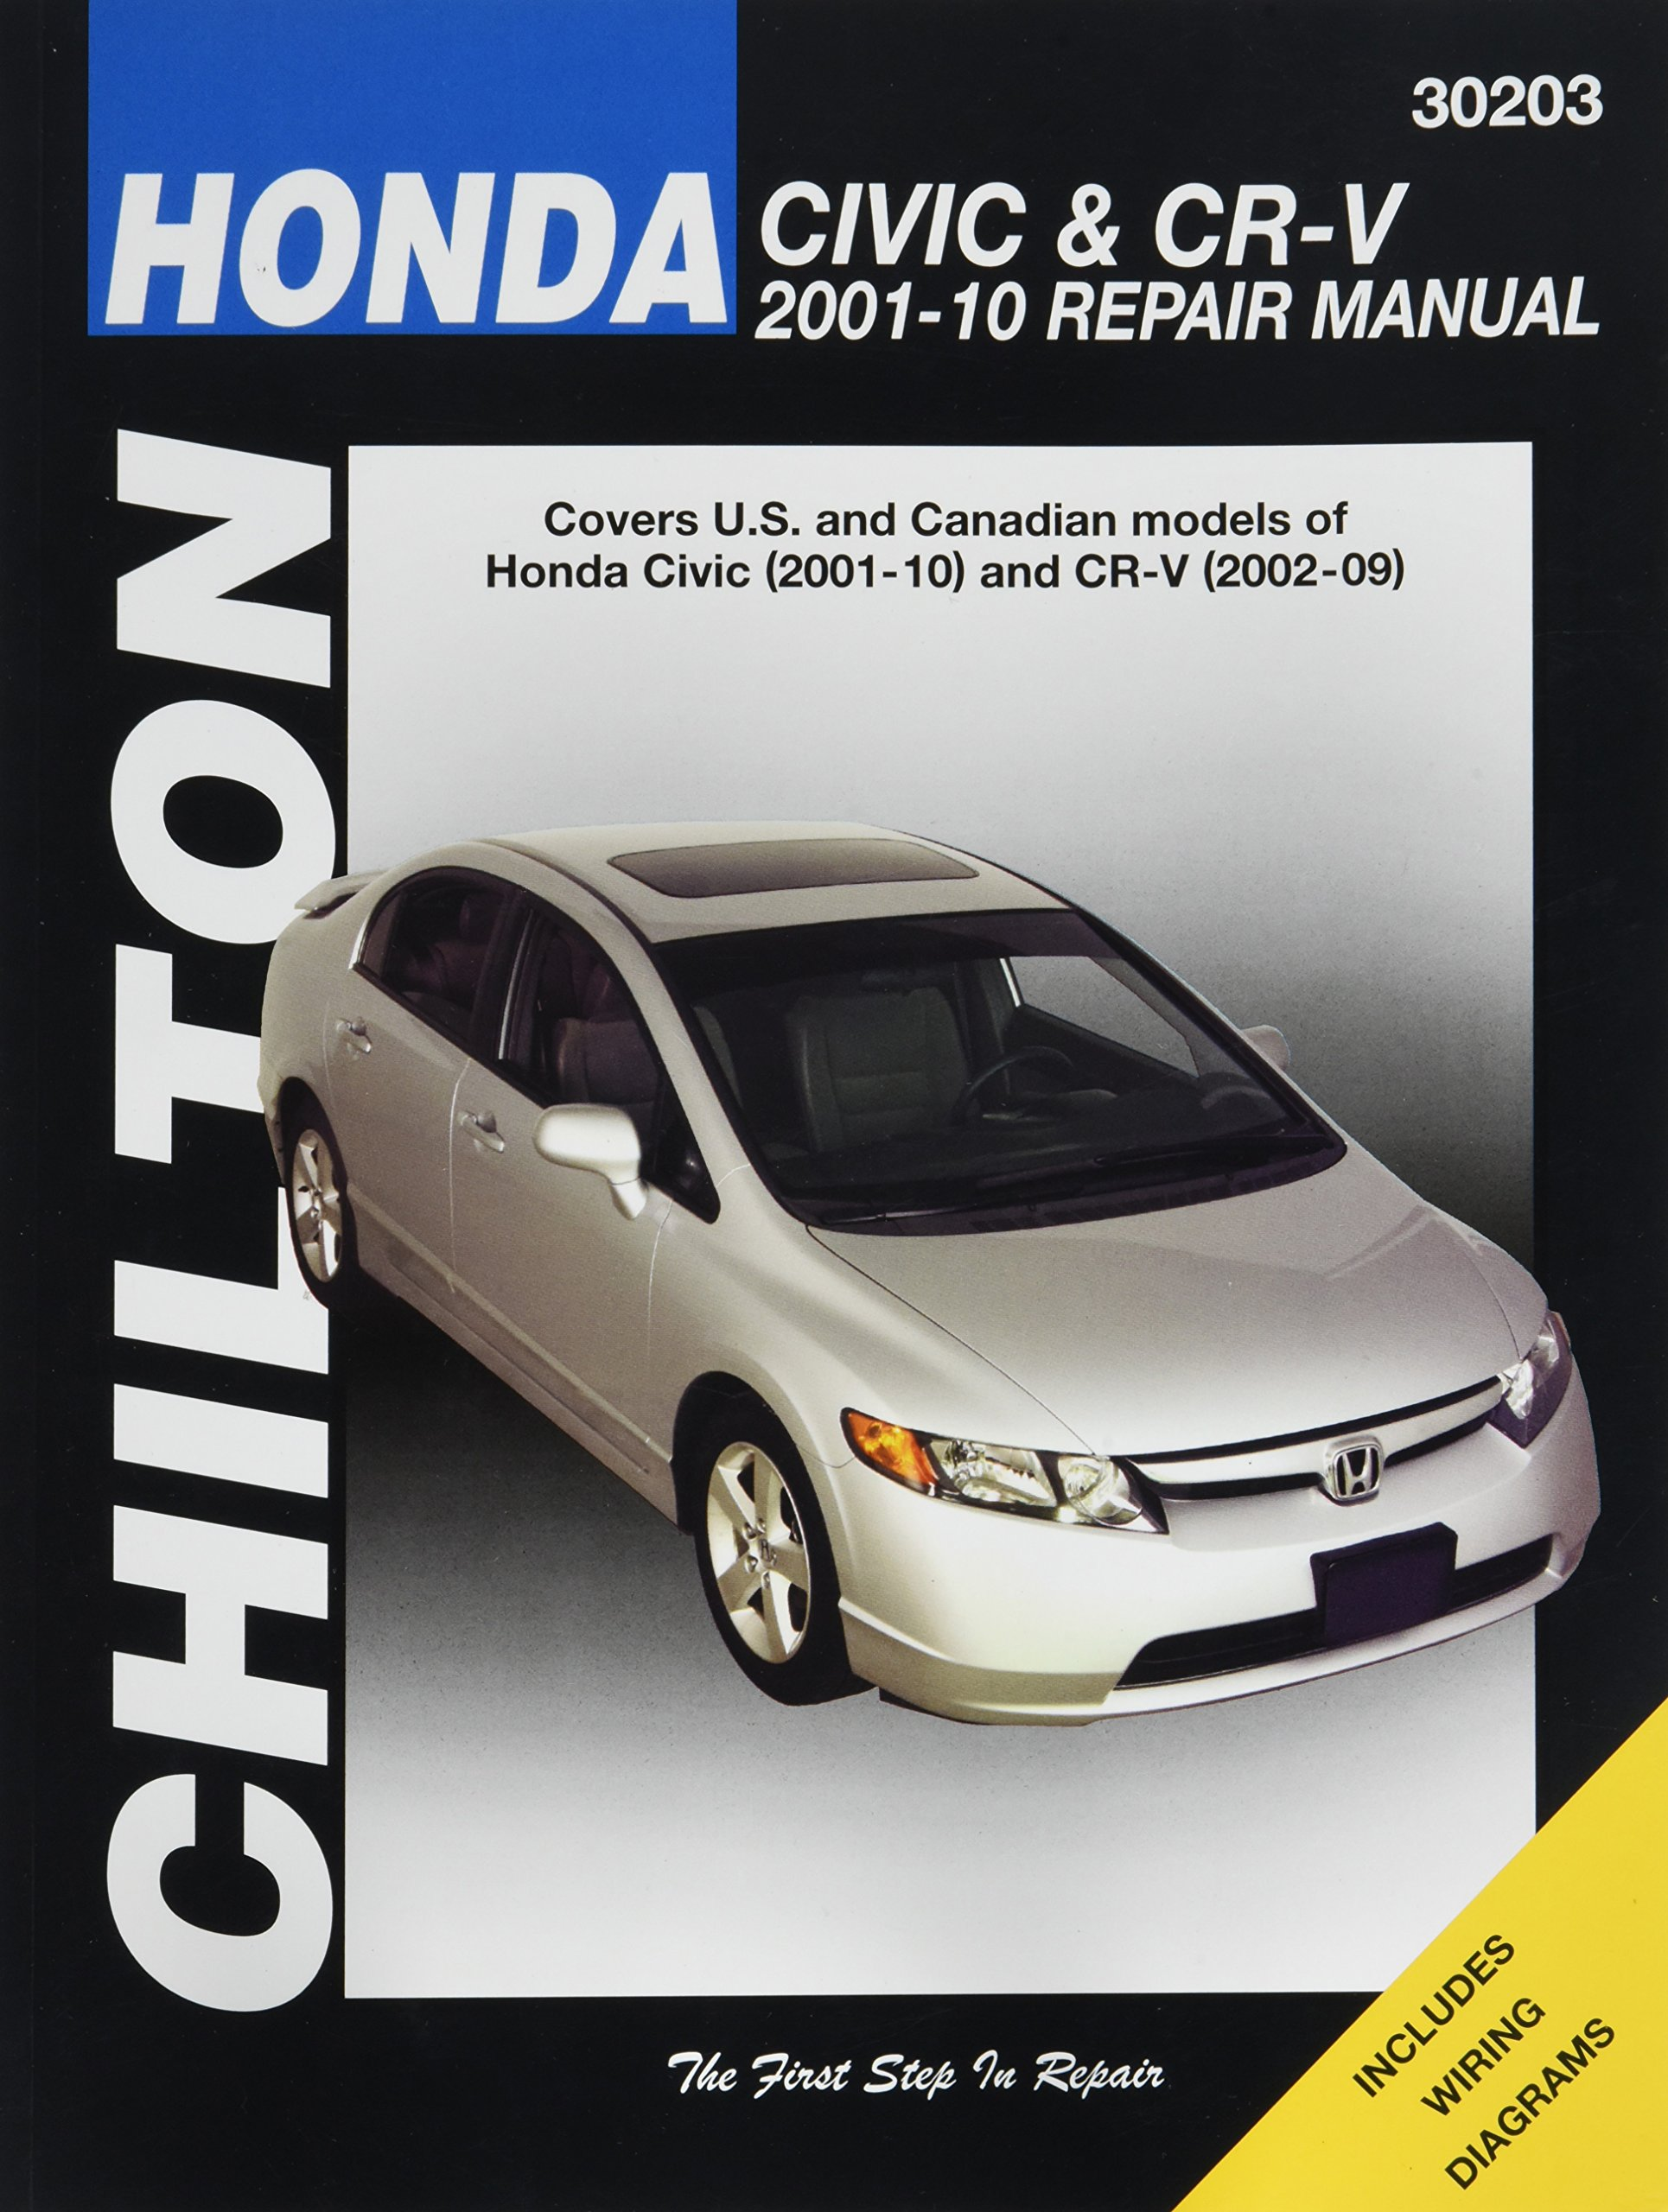 Honda Civic (2001-10) and CR-V (2002-09) Repair Manual (30203):  0035675302036: Amazon.com: Books